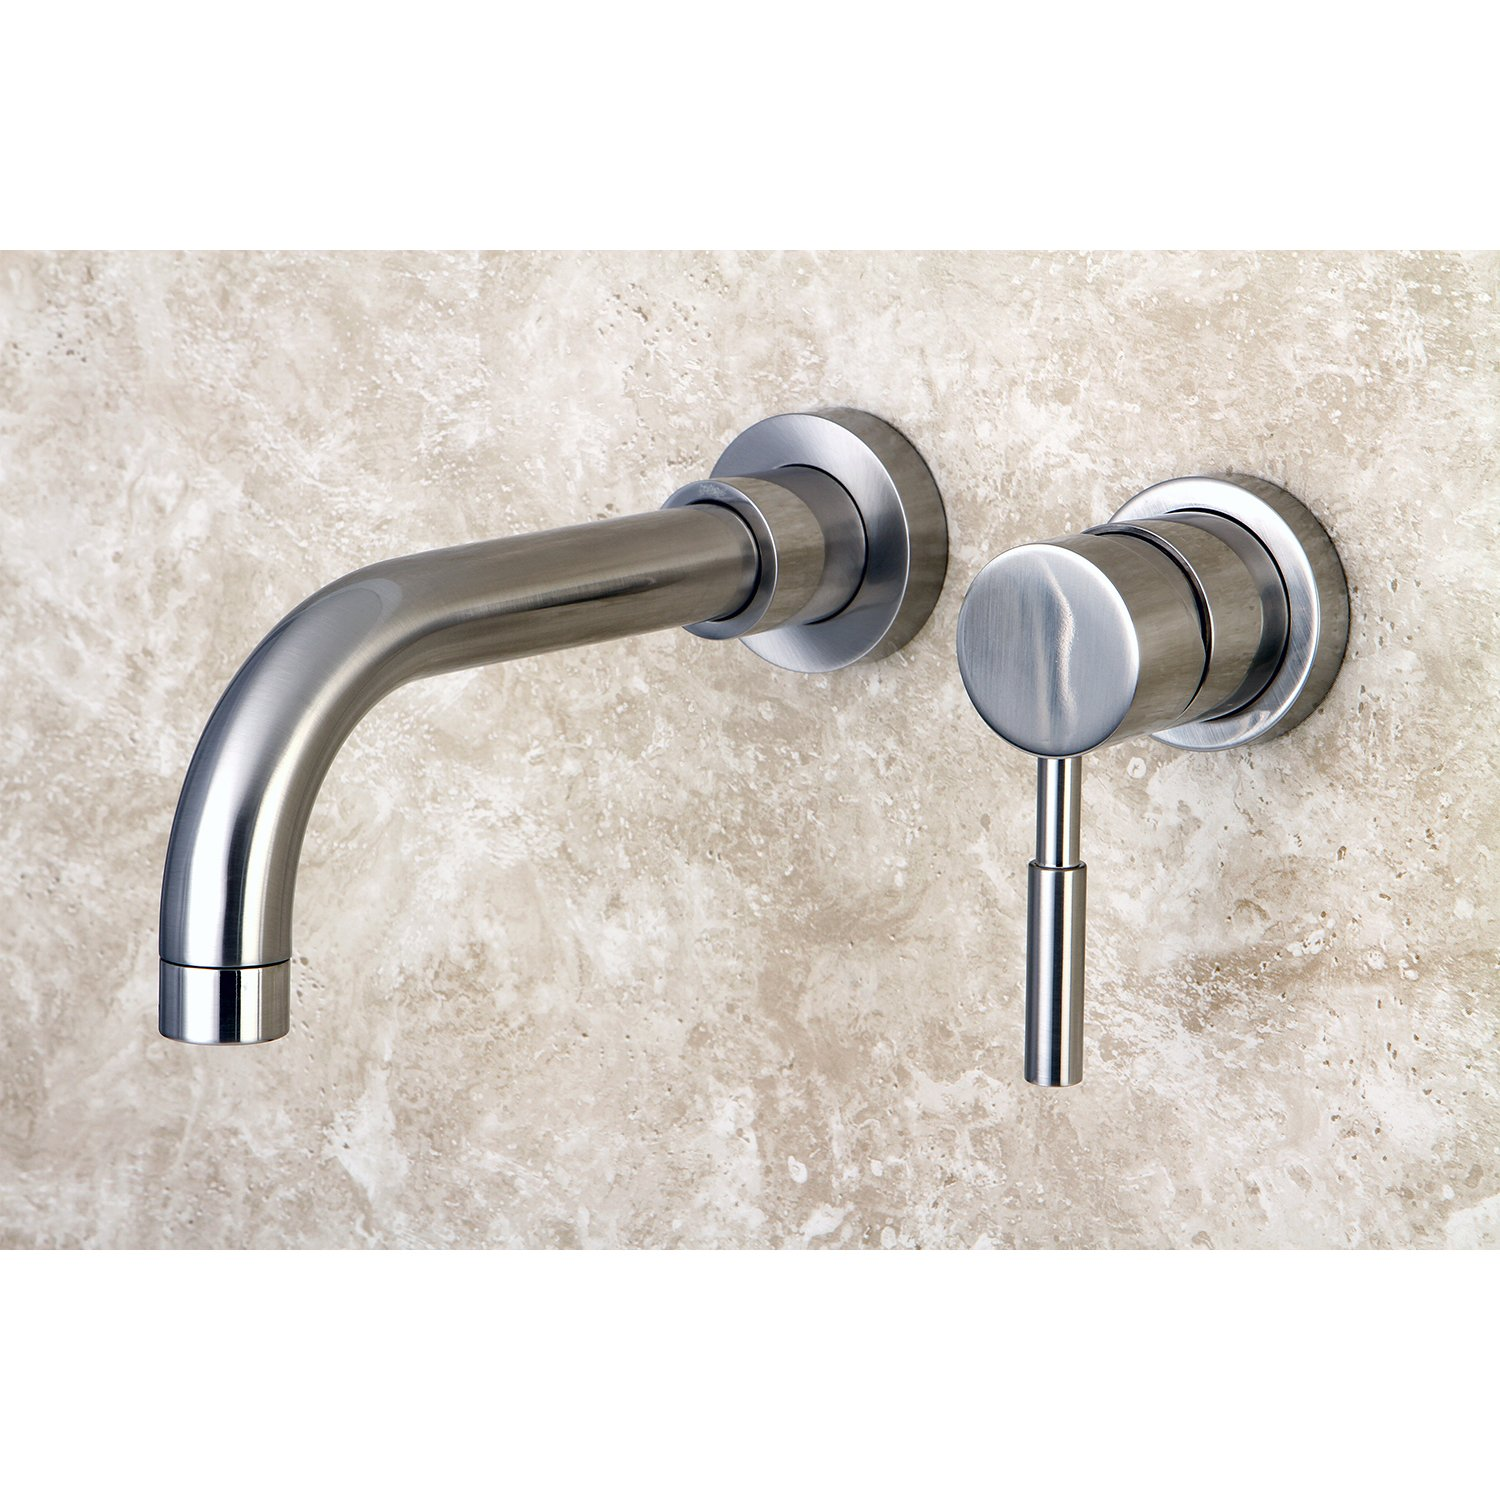 bathroom free faucets faucet titus wall garden nickel mount product in today shipping home vigo brushed overstock